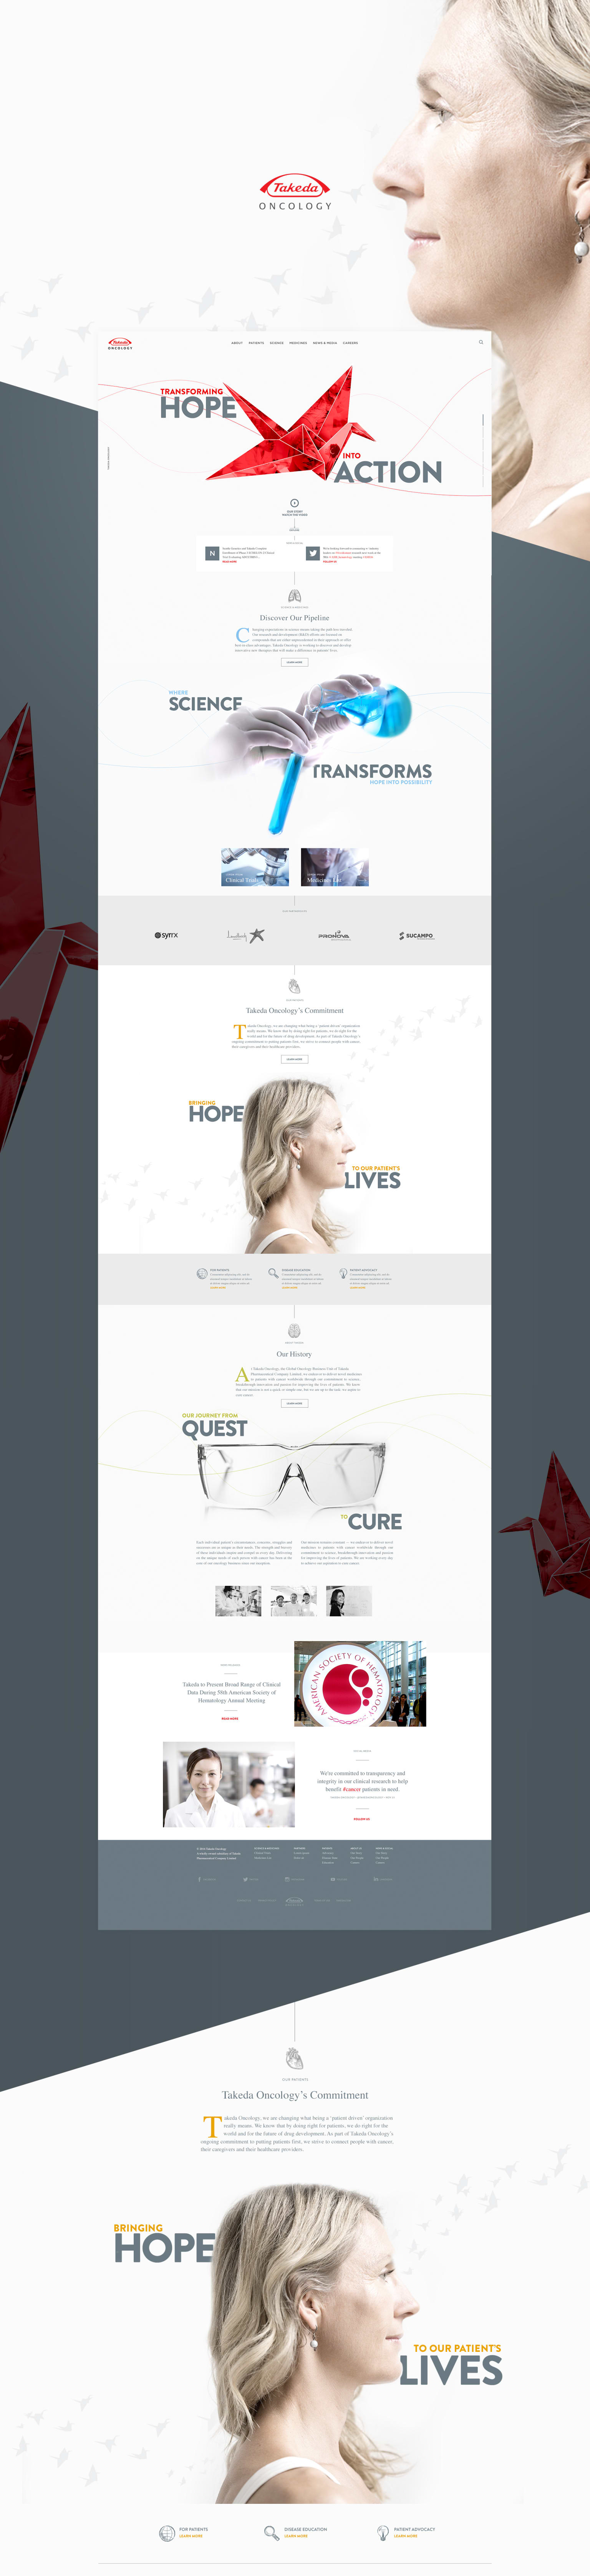 Oncology Website Redesign